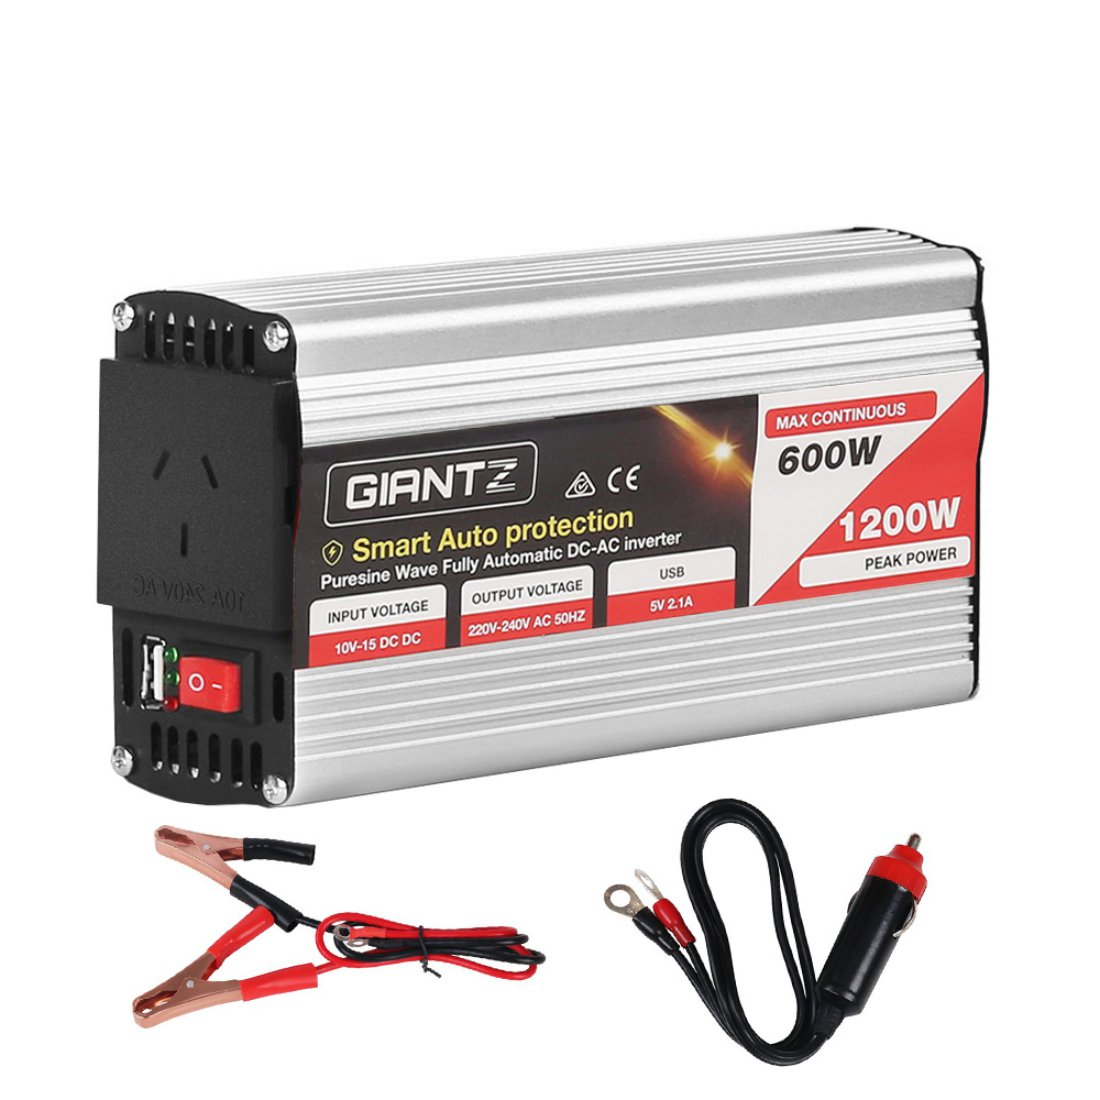 600W Pure Sine Wave 12V to 240V Inverter